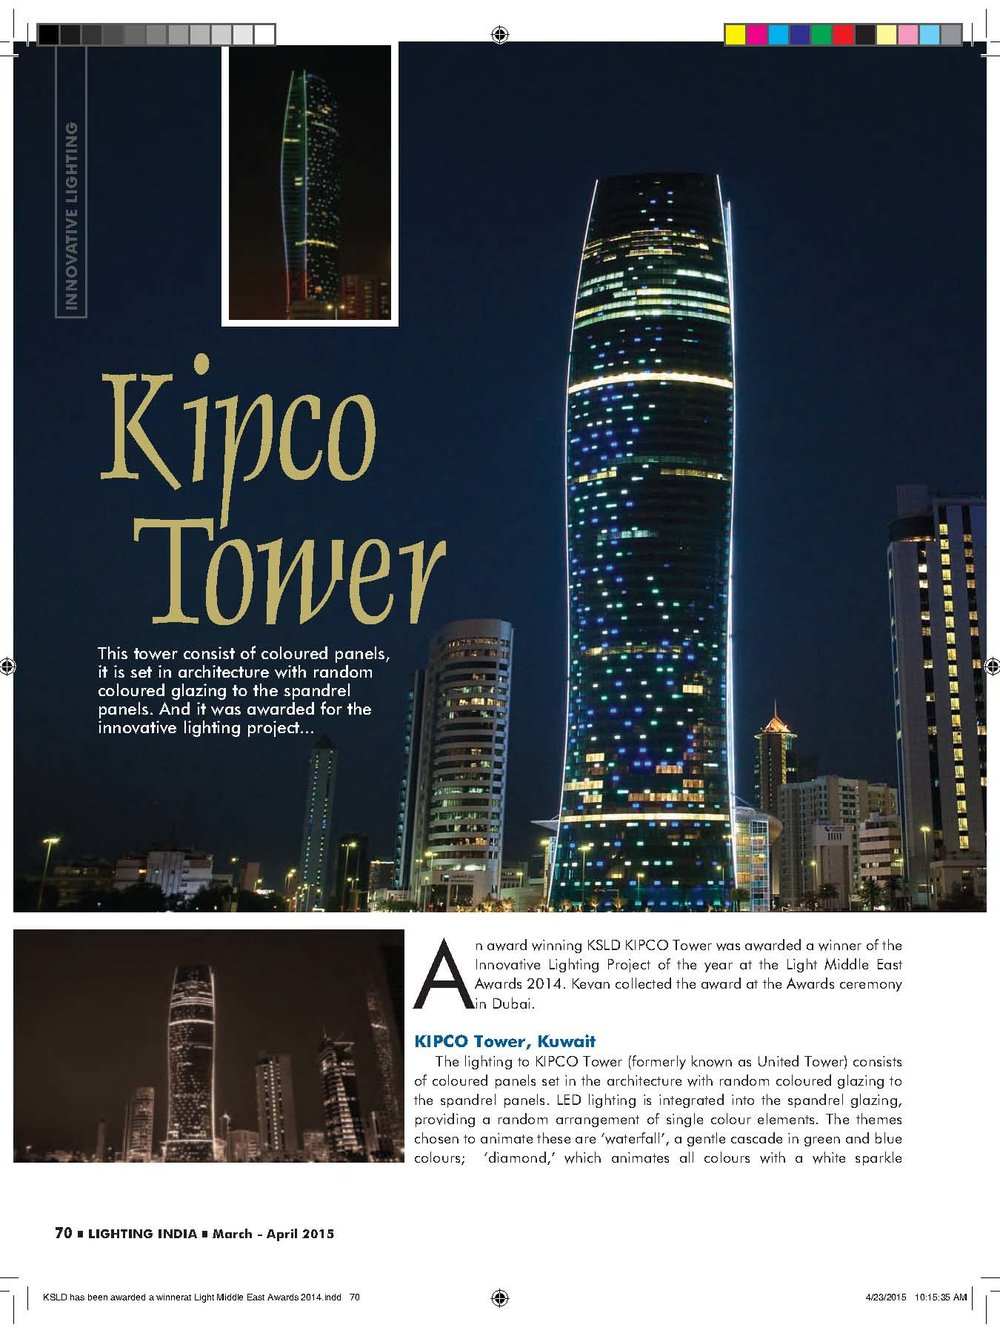 Article: KIPCO Tower